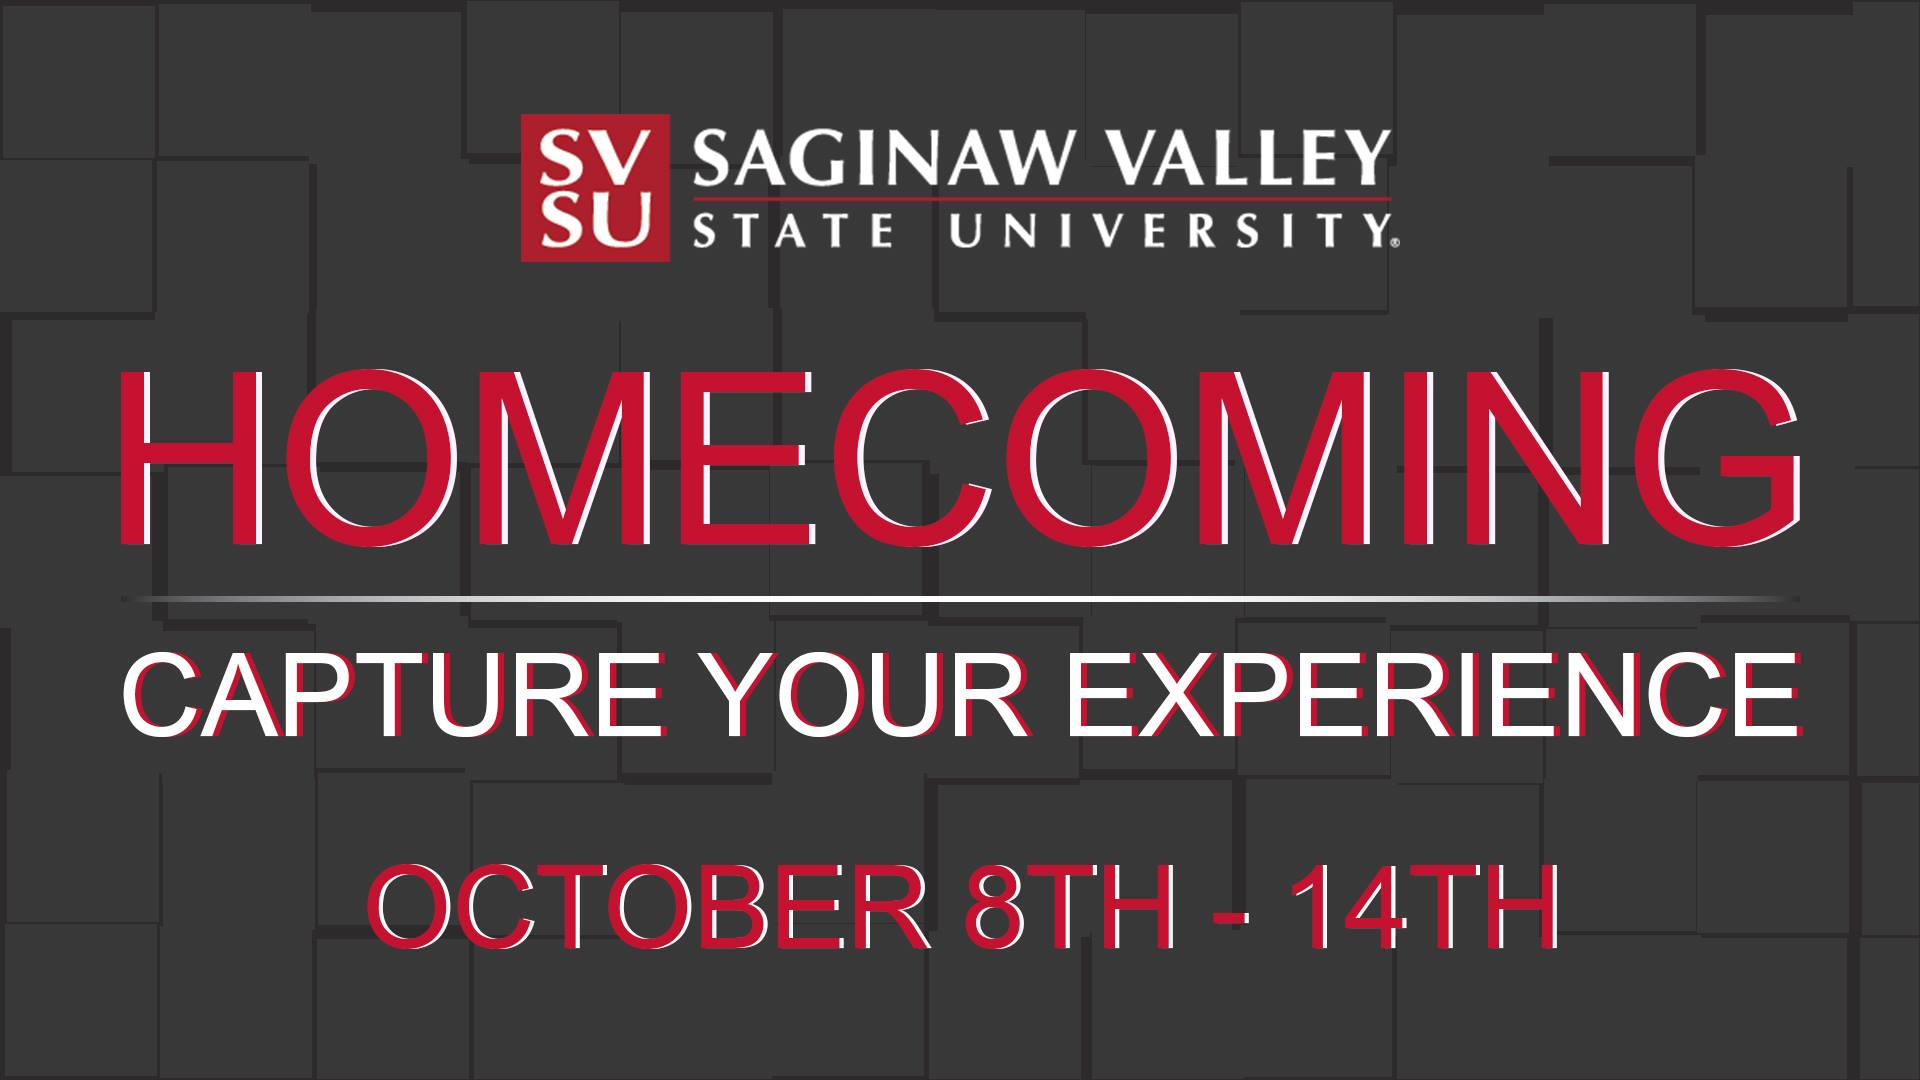 Homecoming 2017 Theme - Capture your experience.